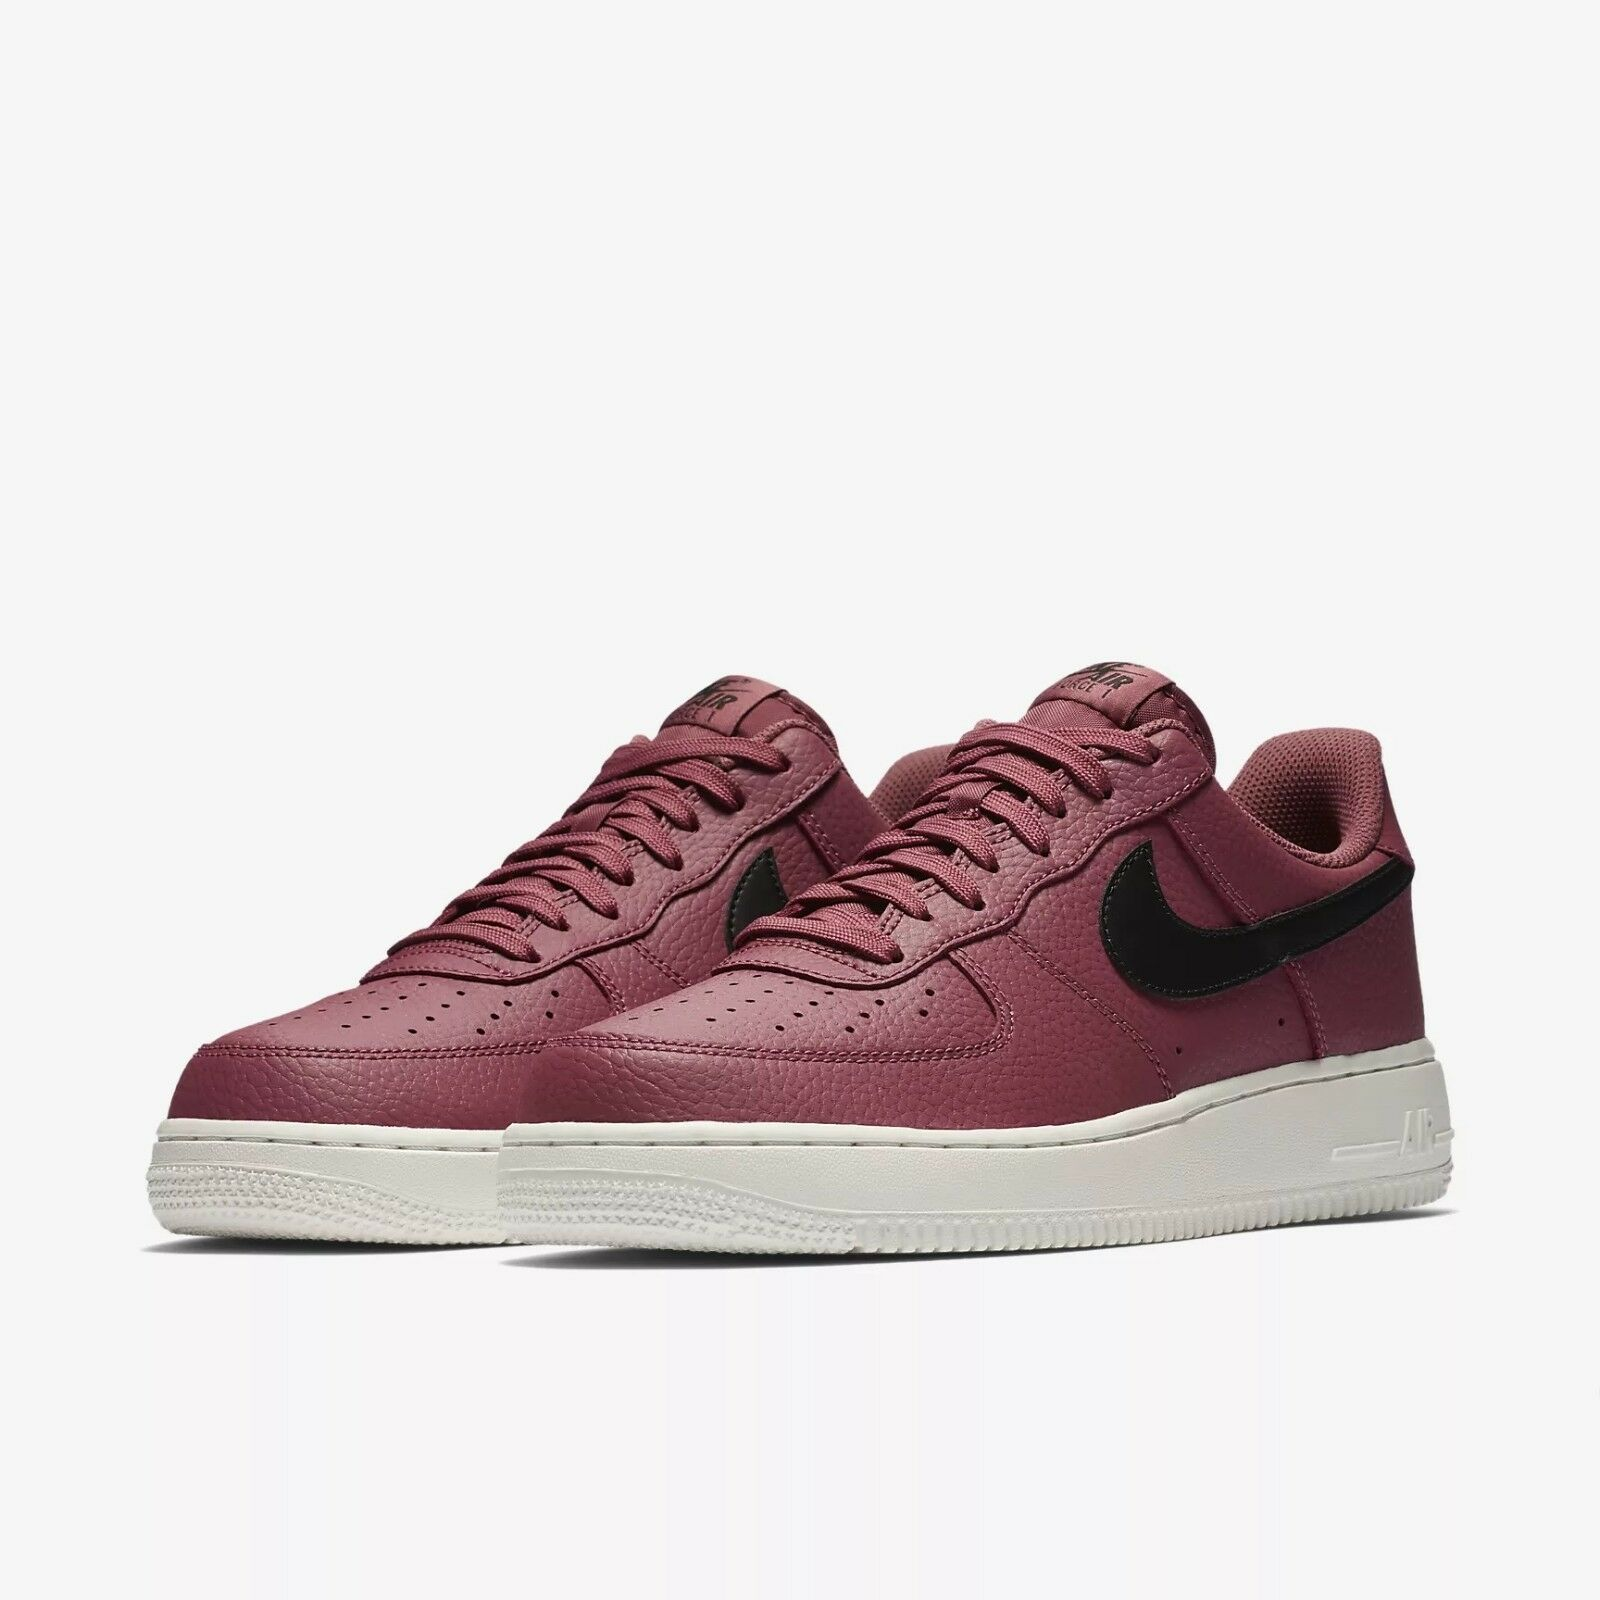 Hommes Nike Air Force 1 New '07 Low Vintage Wine/blanc New 1 In Box AA4083-601 7076c2